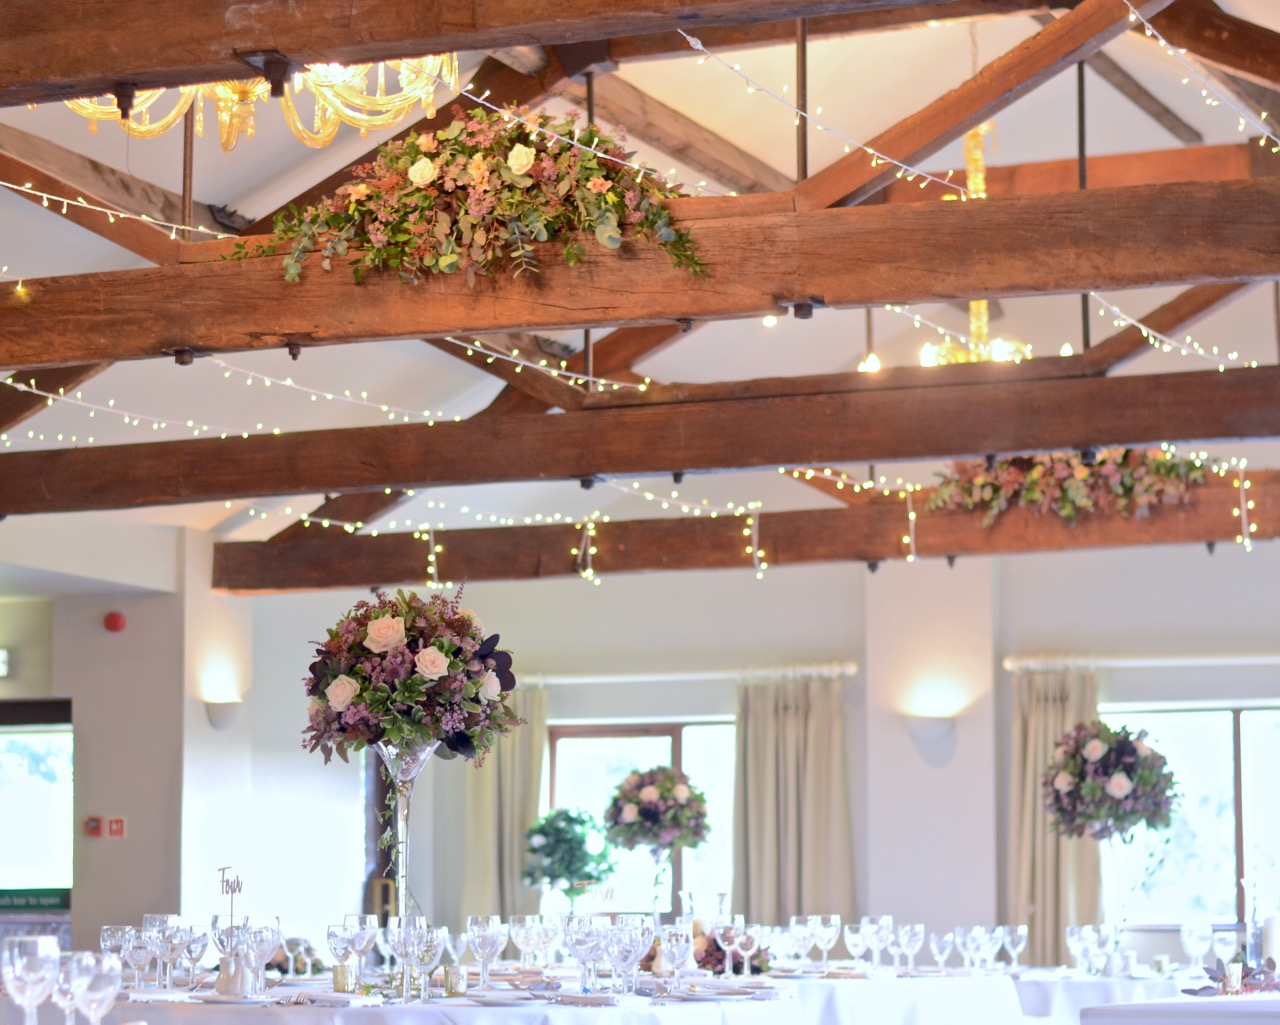 Wedding flowers blog east horton golf club all set up for jos wedding breakfast with autumnal high and low centrepieces and co ordinating long and low trailing designs on the junglespirit Choice Image